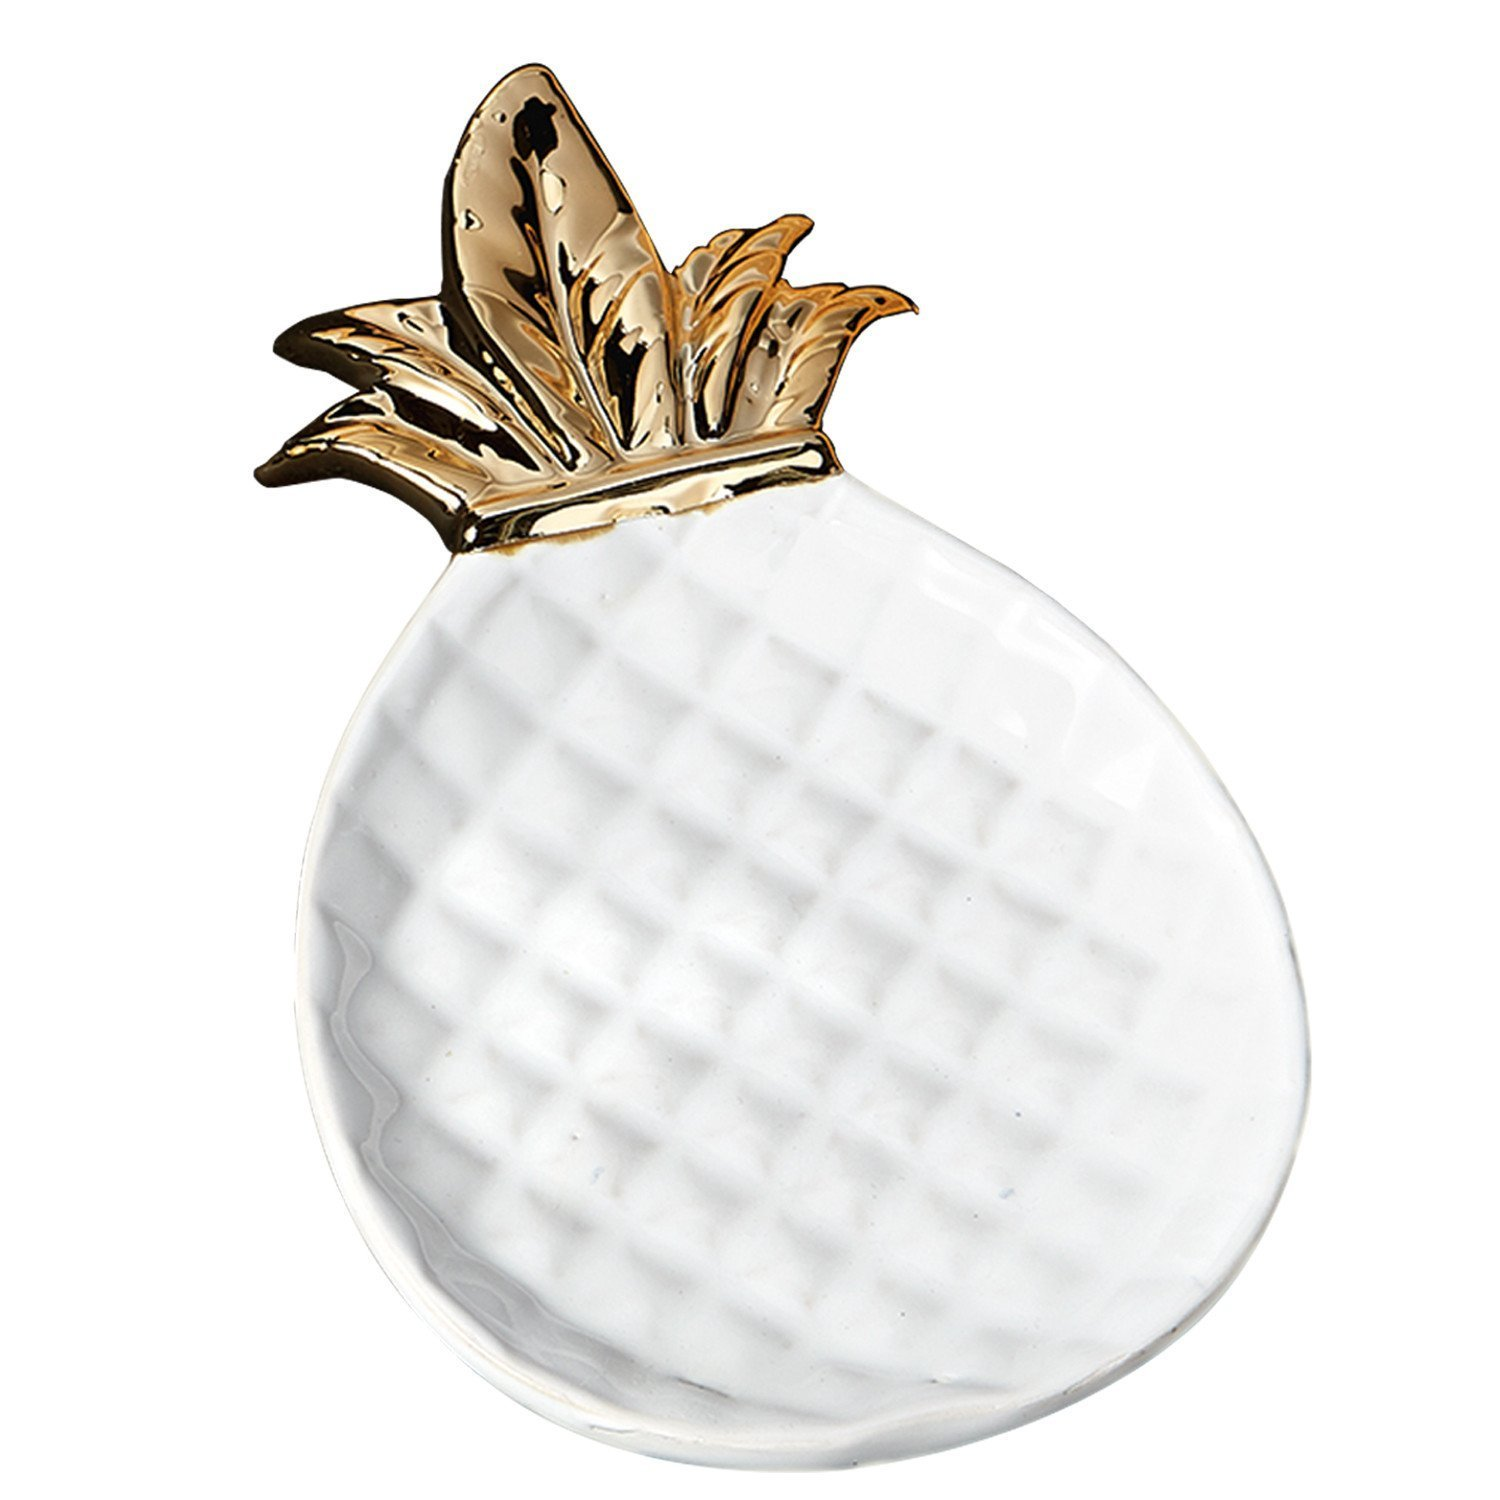 DII White and Gold Pineapple Shaped Ceramic Plate for Jewelry Ring Dish Tray Organizer, Snack Bread Sugar Dessert Serving Platter (Small)